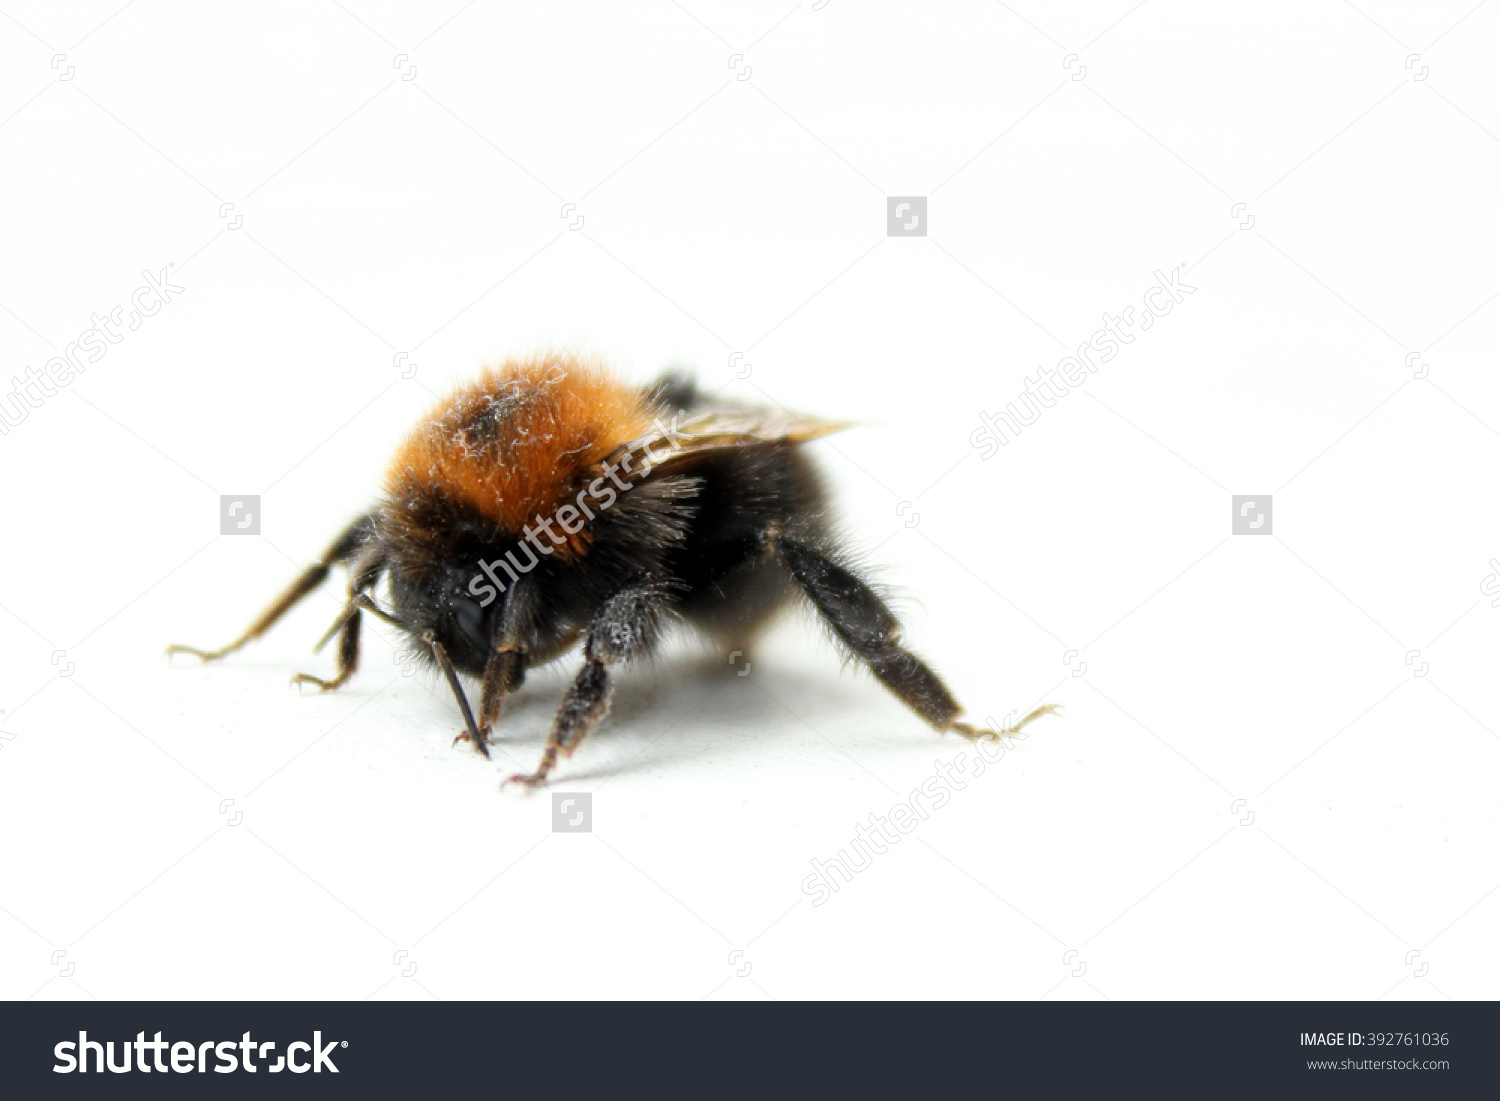 Bumblebee Stock Photo 392761036.